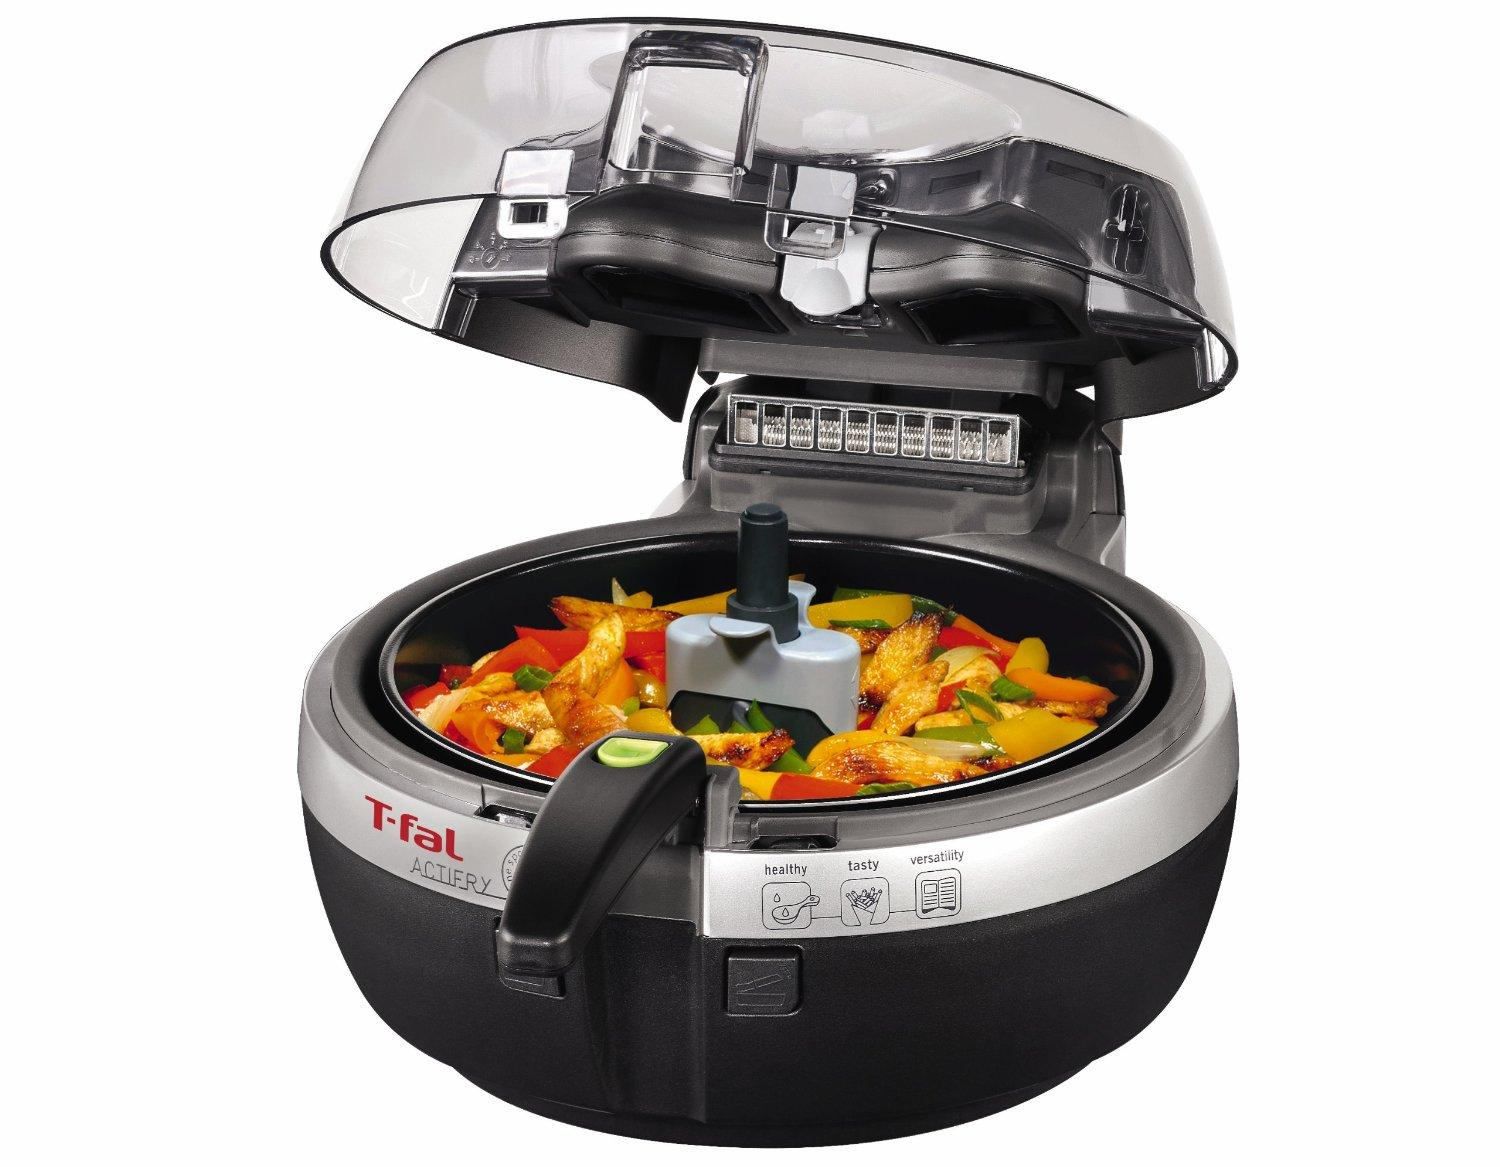 Lowest price! T-fal FZ7002 ActiFry Low-Fat Healthy Dishwasher Safe Multi-Cooker